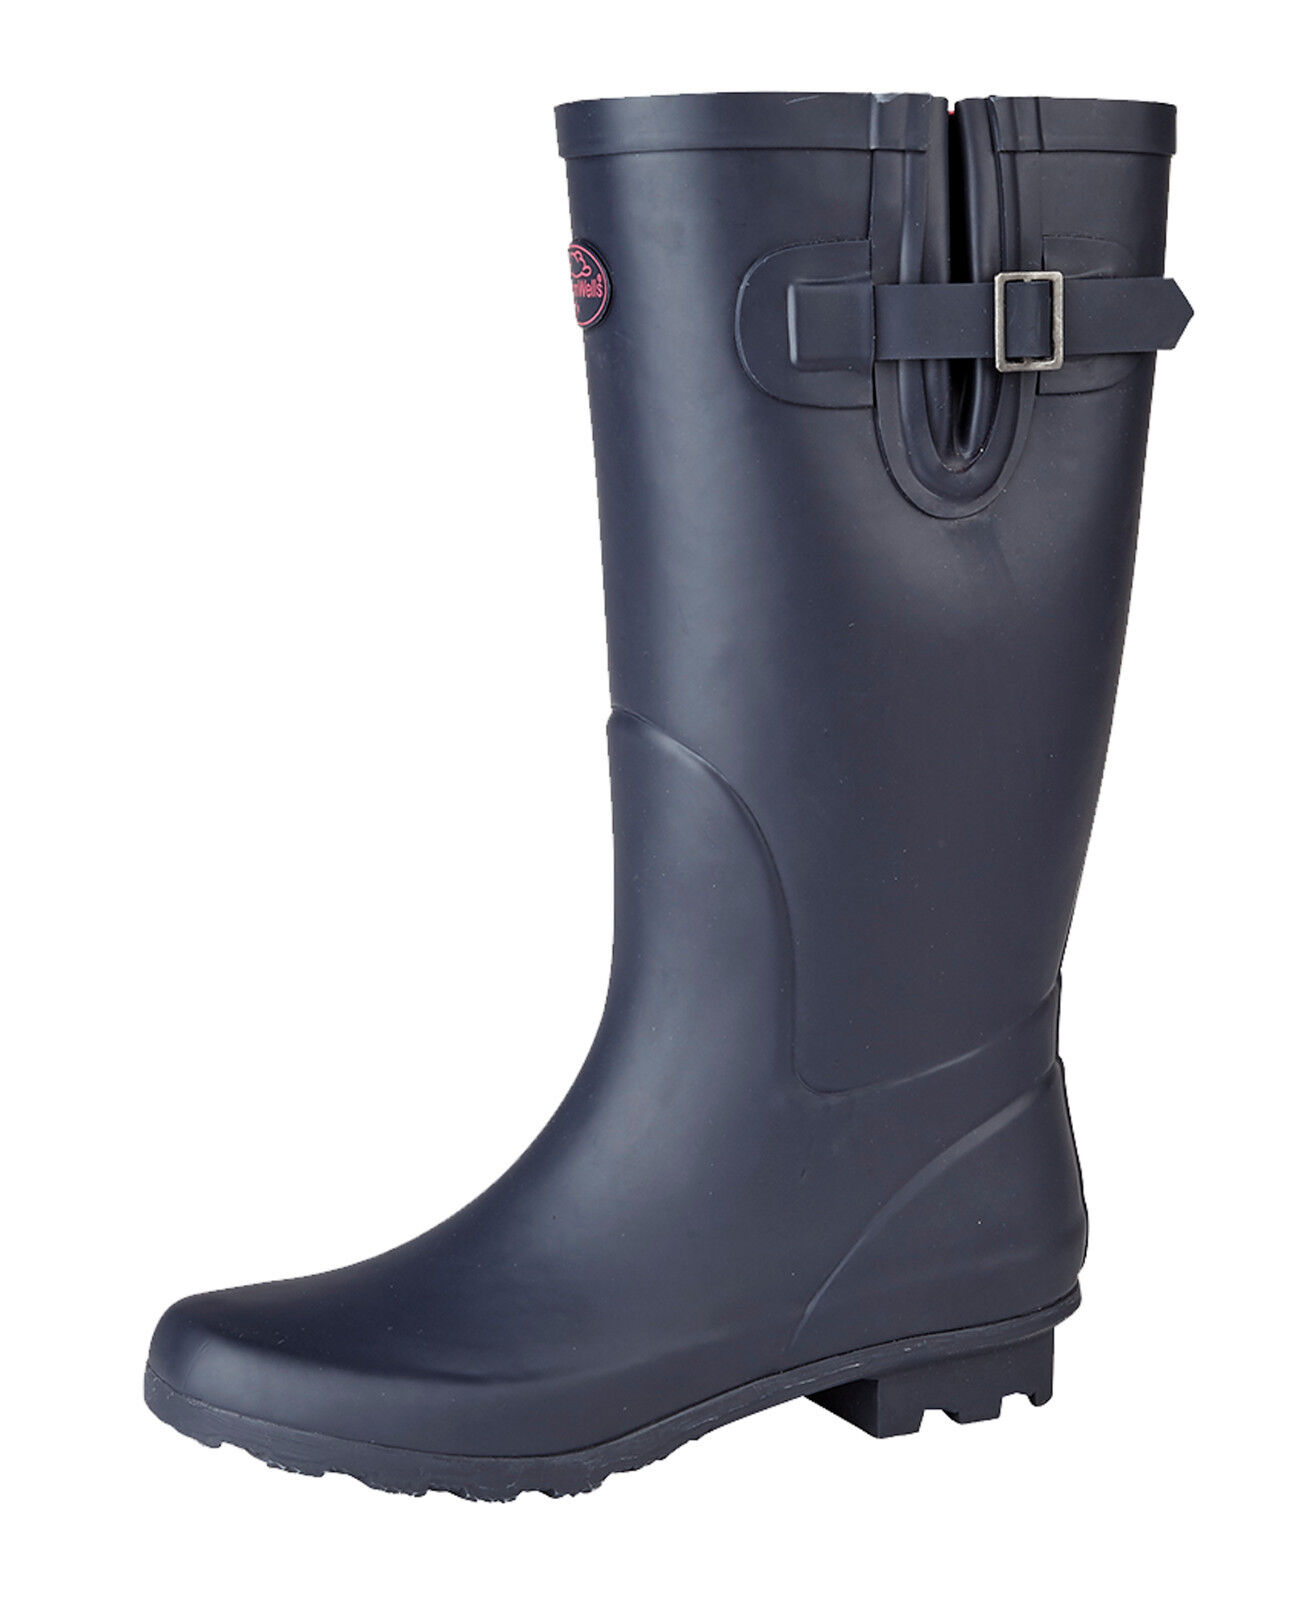 f120bb5d369 Details about Ladies Navy Blue Wide Calf Wellington Boots Rainy Snow  Waterproof Wellies 3-9